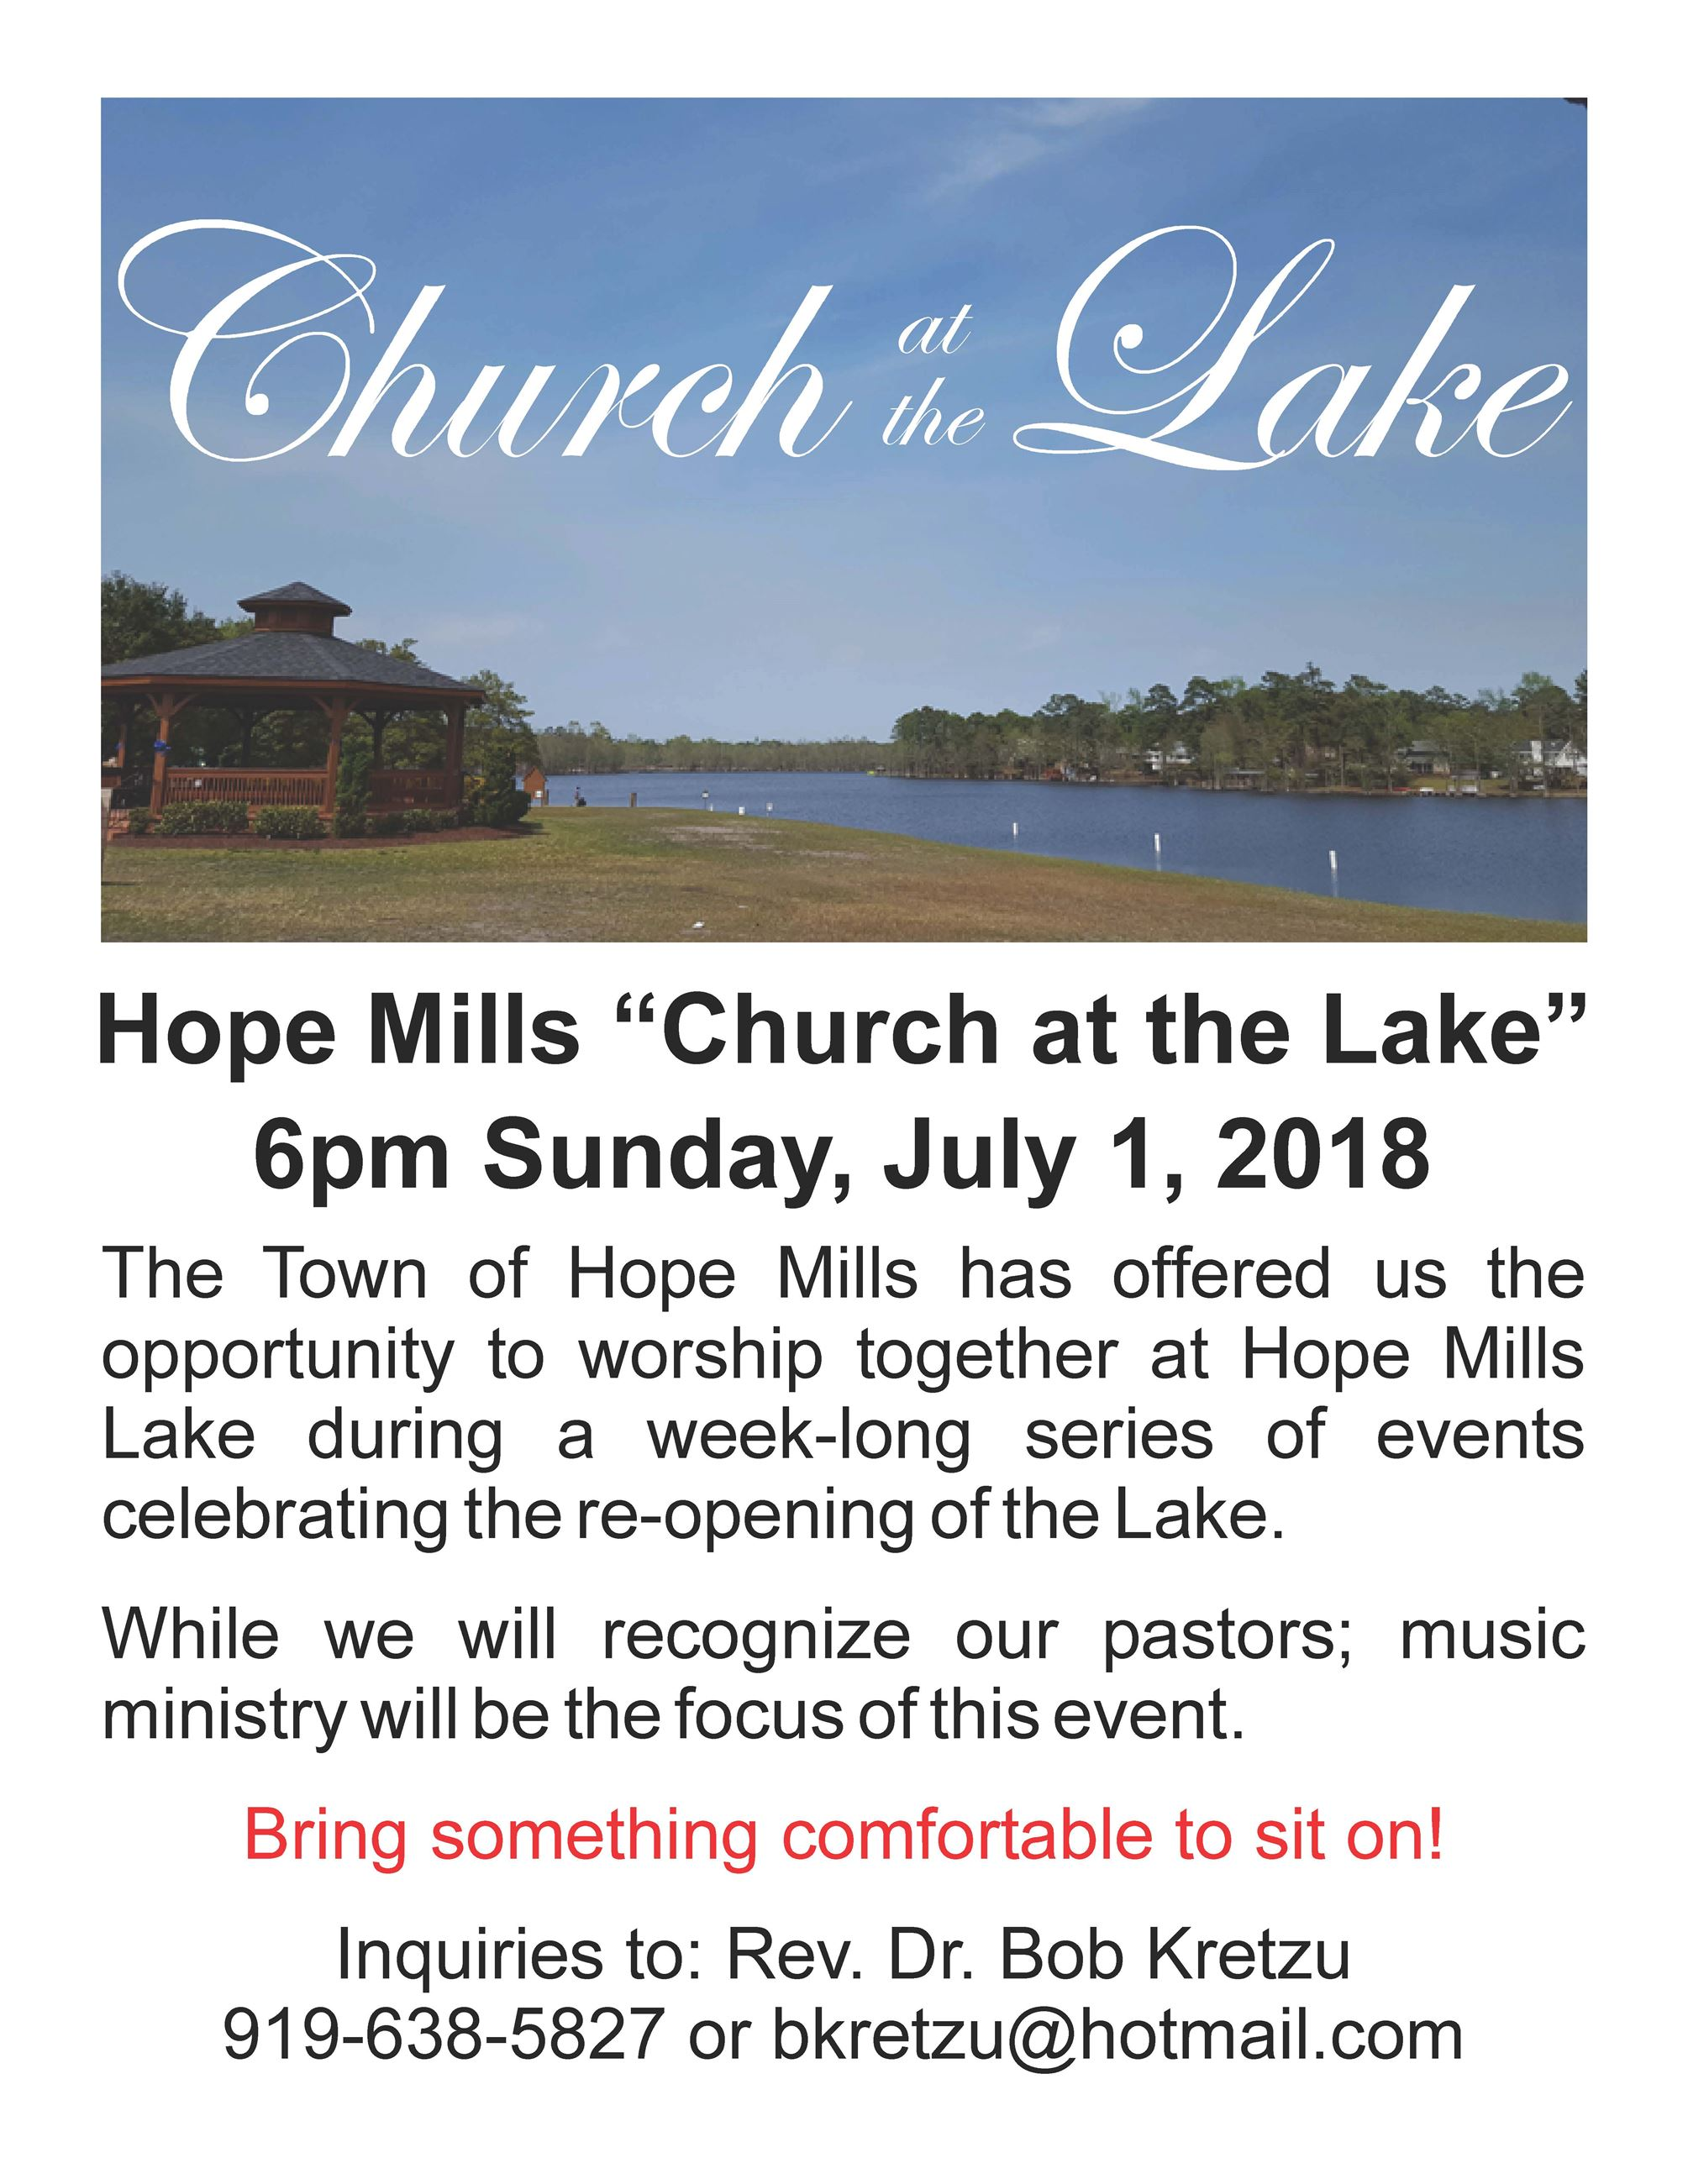 Church at the Lake flyer